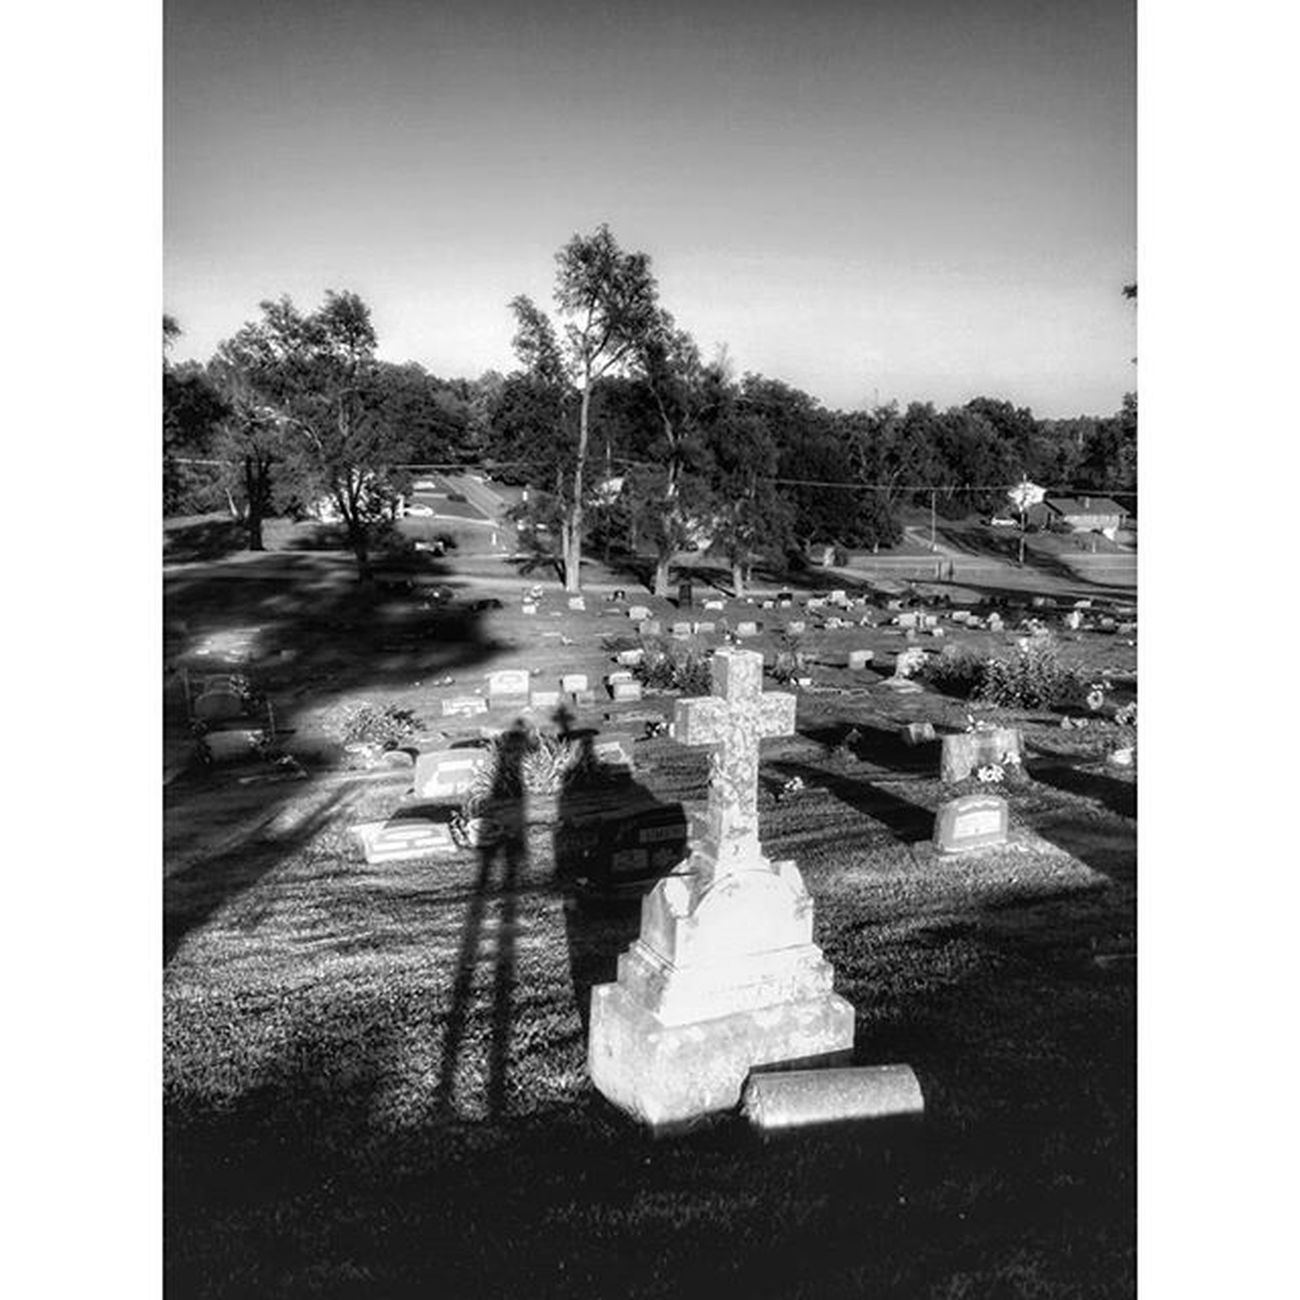 Shadow fun..... Ks_pride Ipulledoverforthis Kansasphotographer Kansasphotos Graveyard_dead World_bnw Bnw_life Bnw_sunset Bnw Bnw_captures